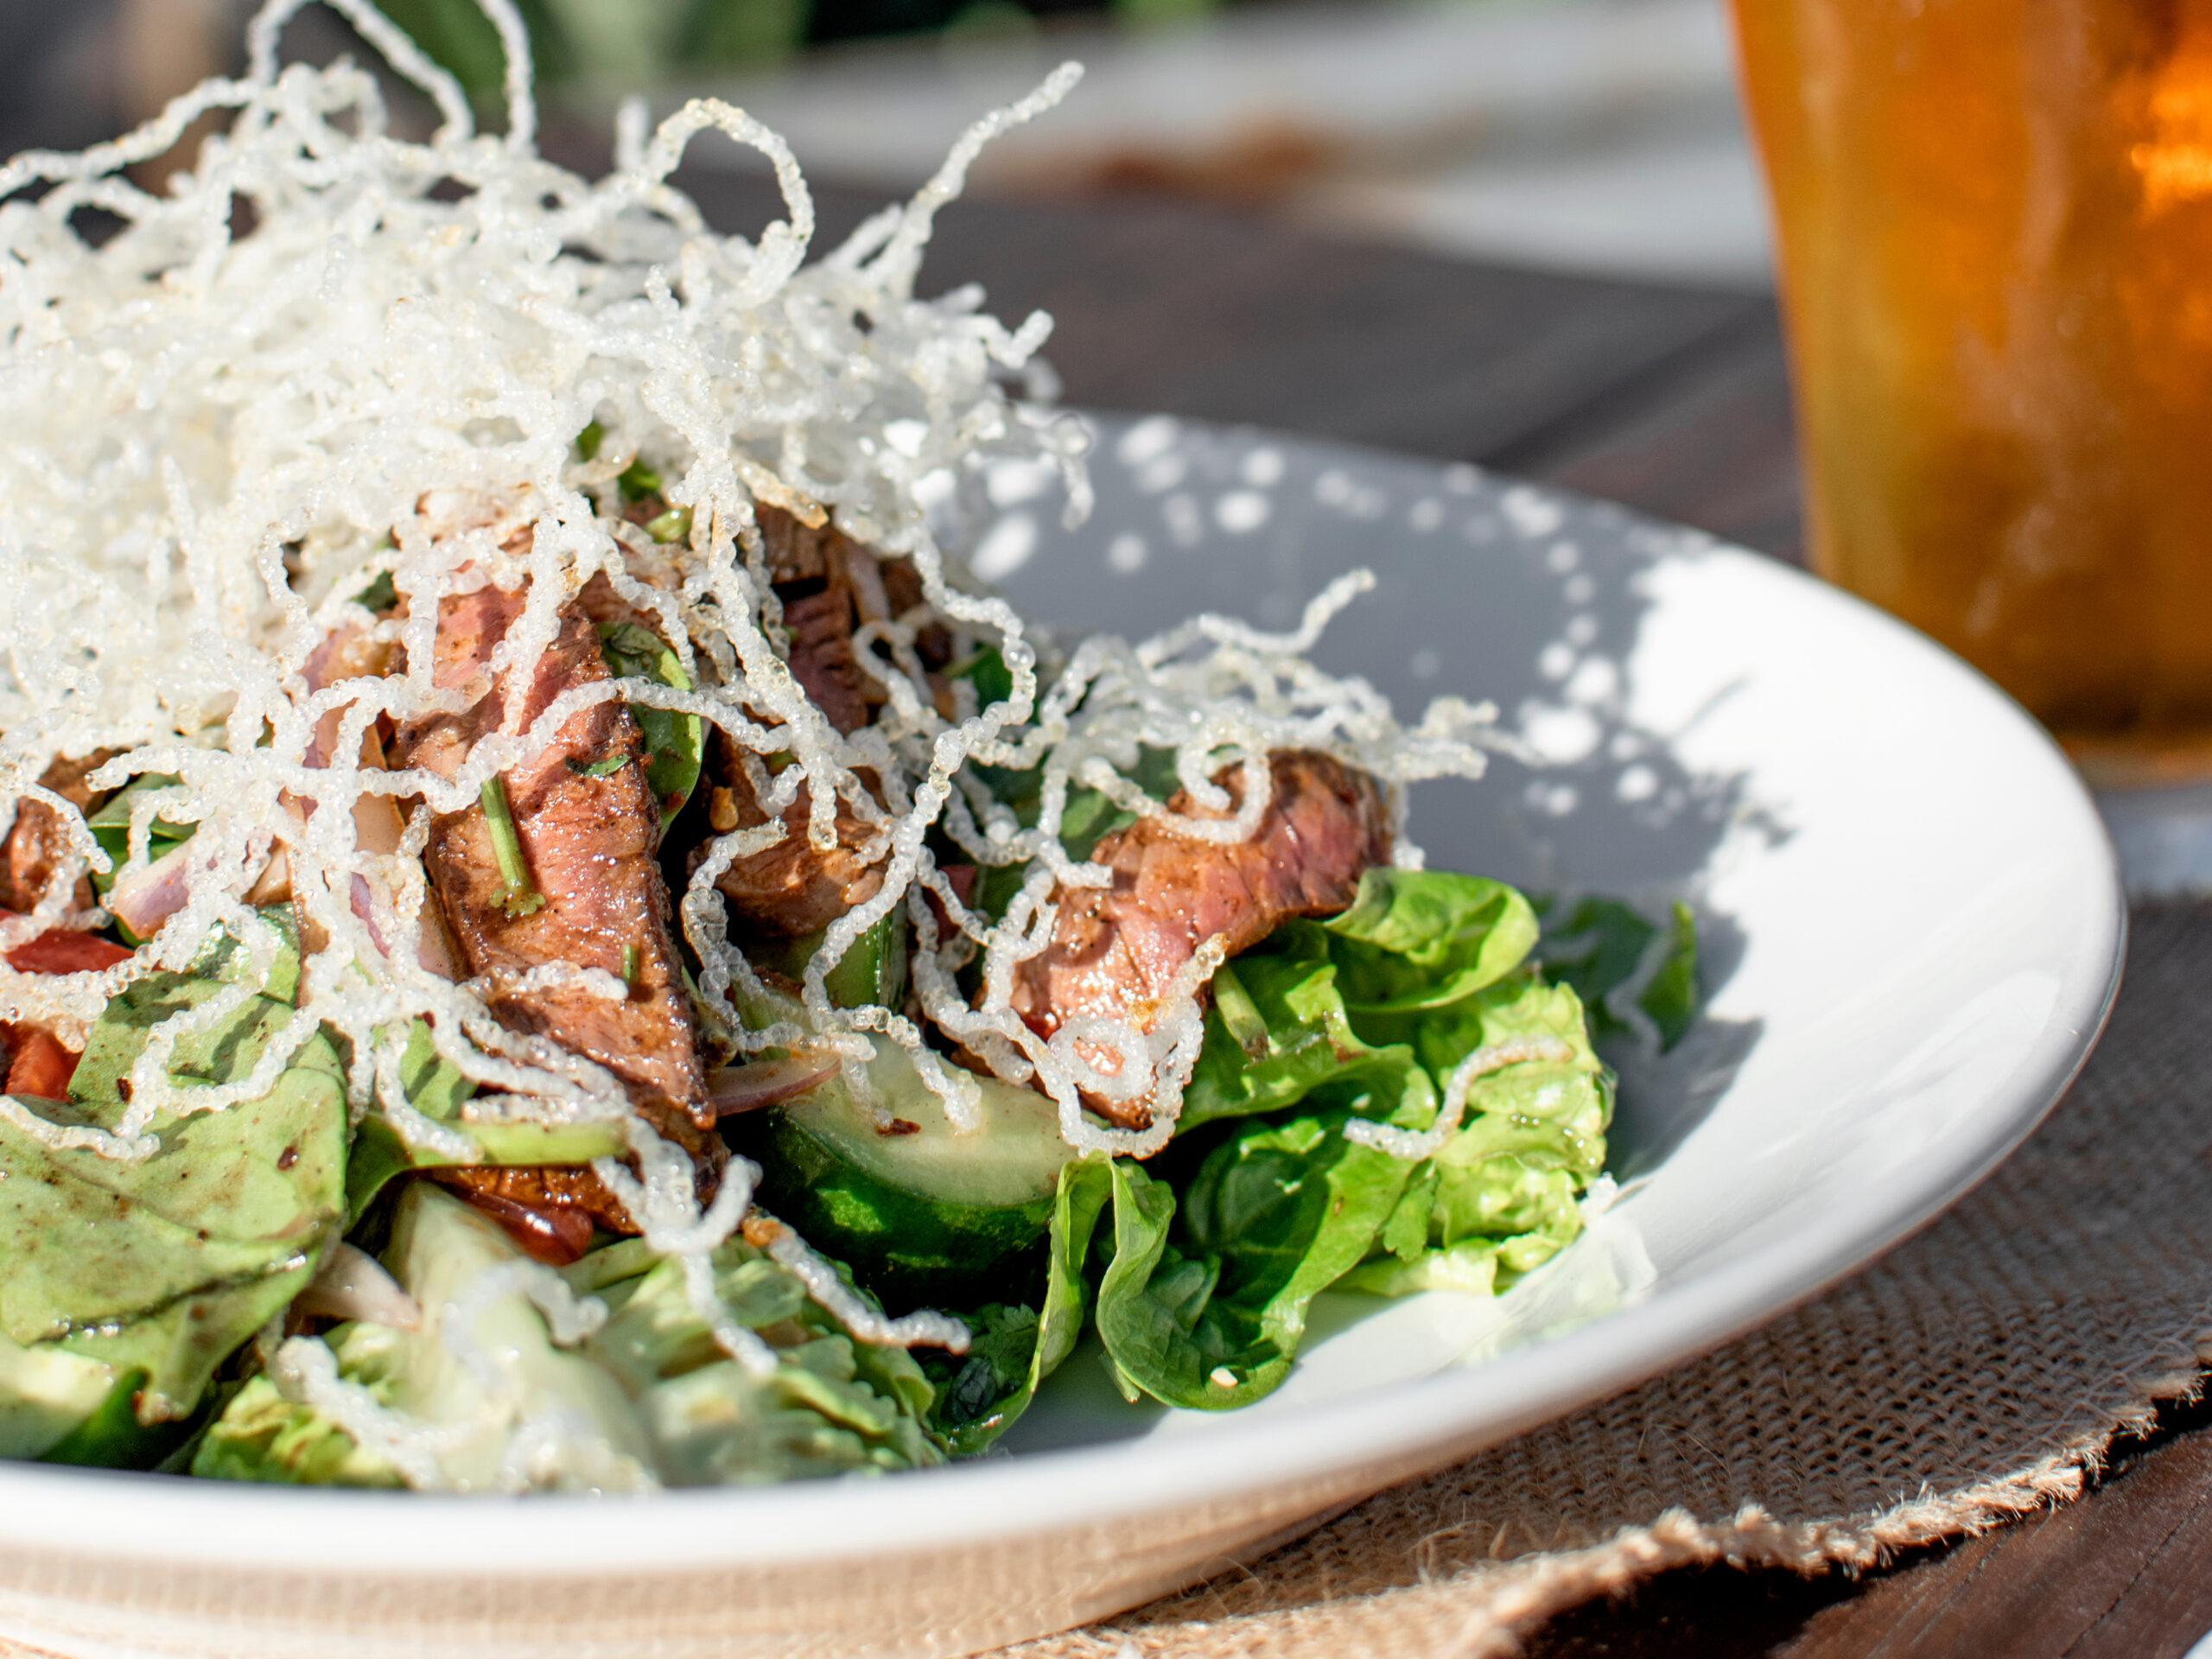 Lunch Specials the Thai Beef Salad